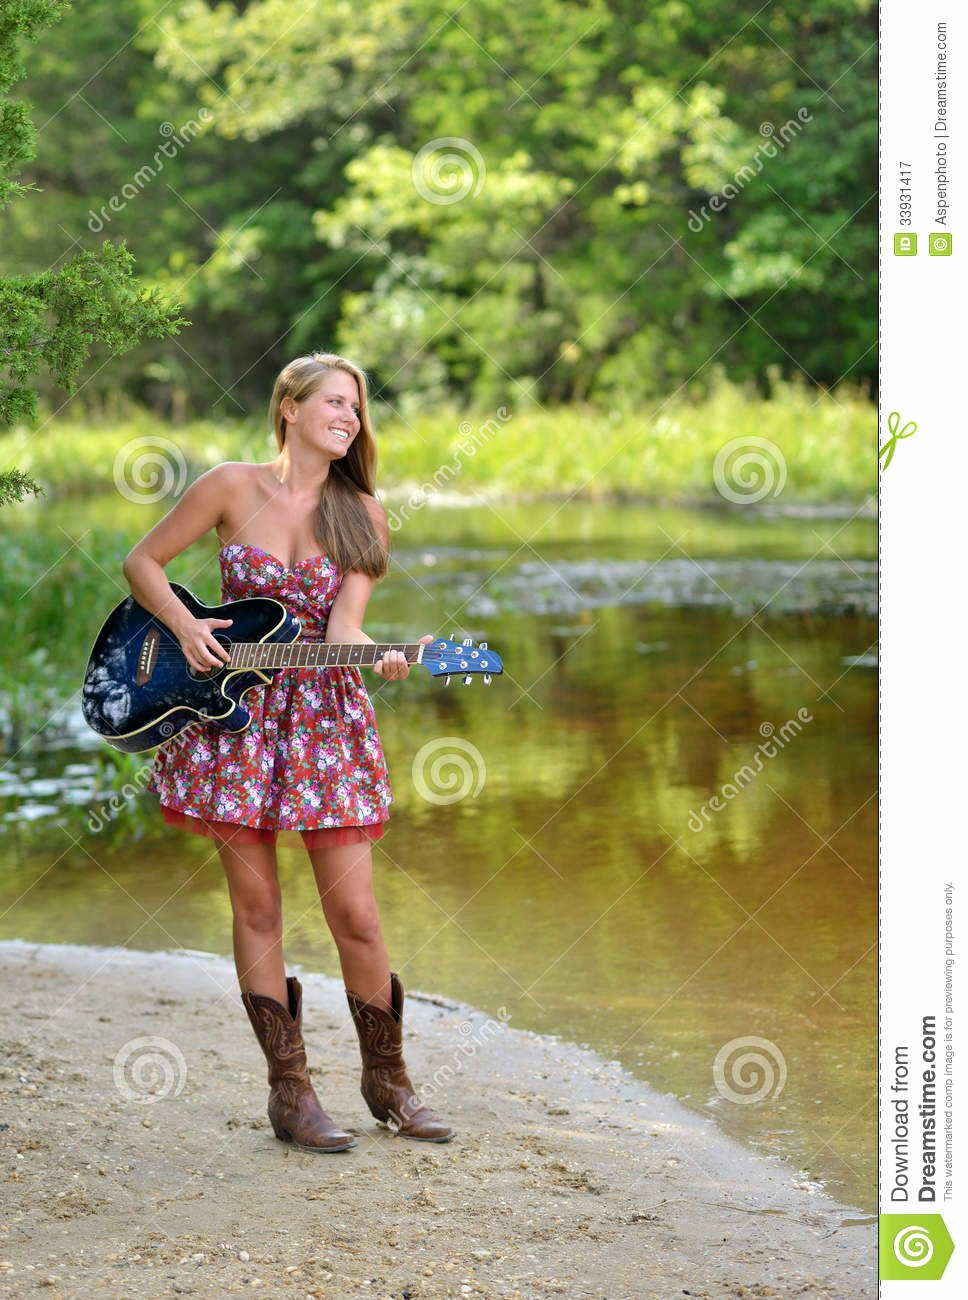 Free Sexy Women Photos Lovely Beautiful Female Guitar Player Outdoors Royalty Free Stock